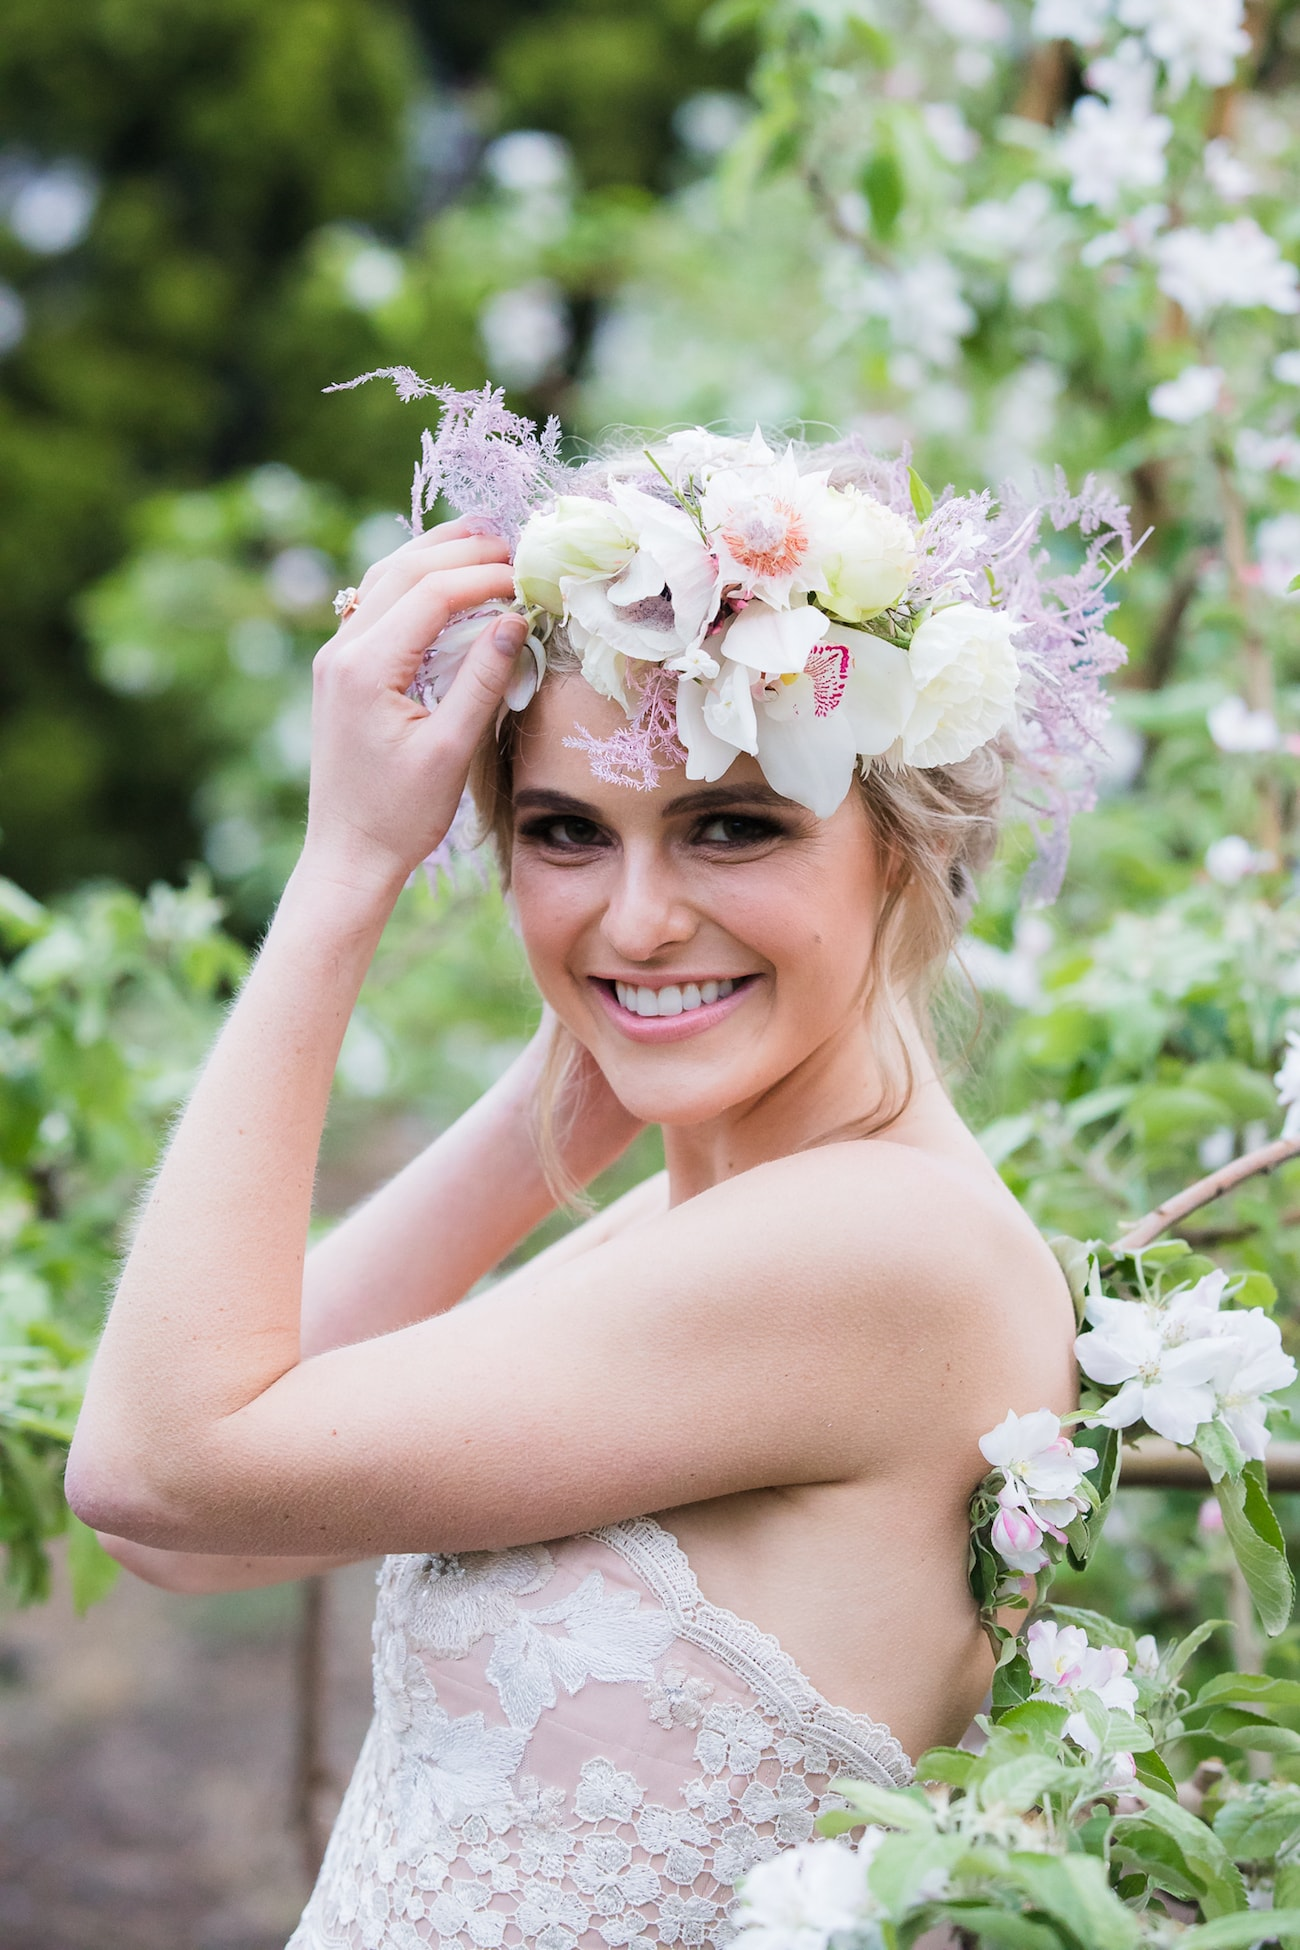 Spring Bridal Shoot | Image: Sulet Fourie